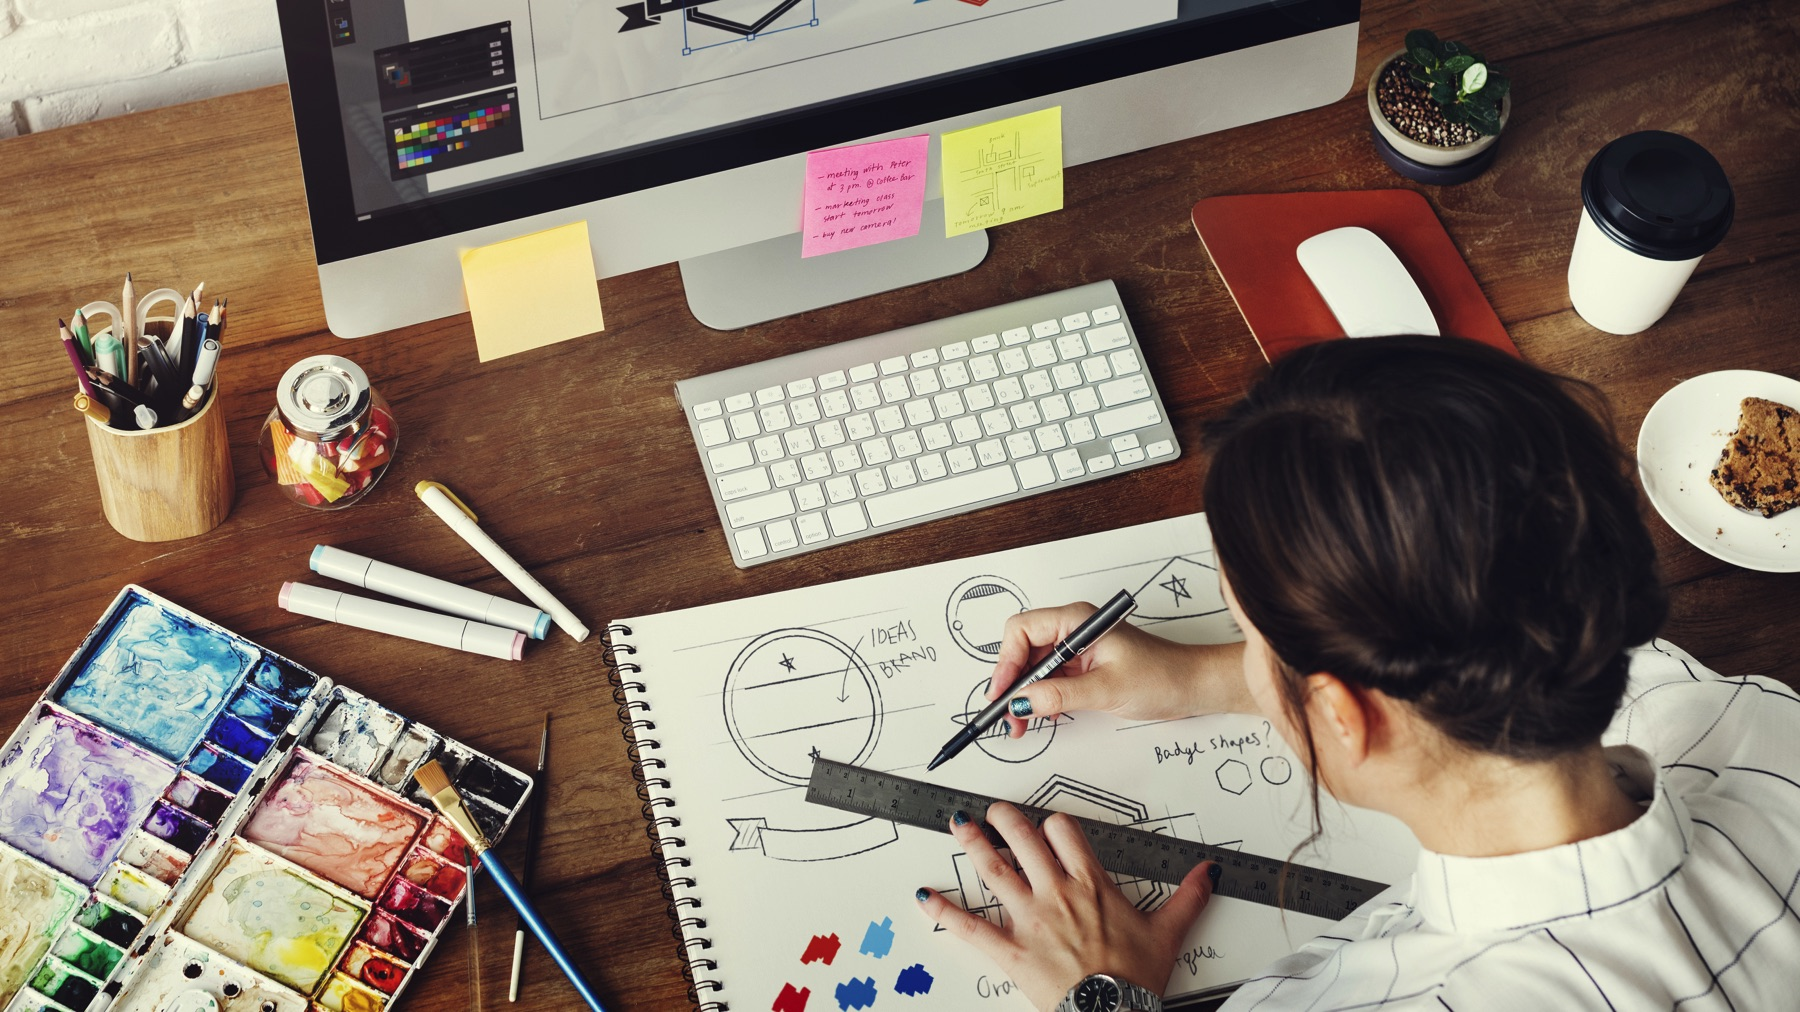 Best Free Software For Graphic Design